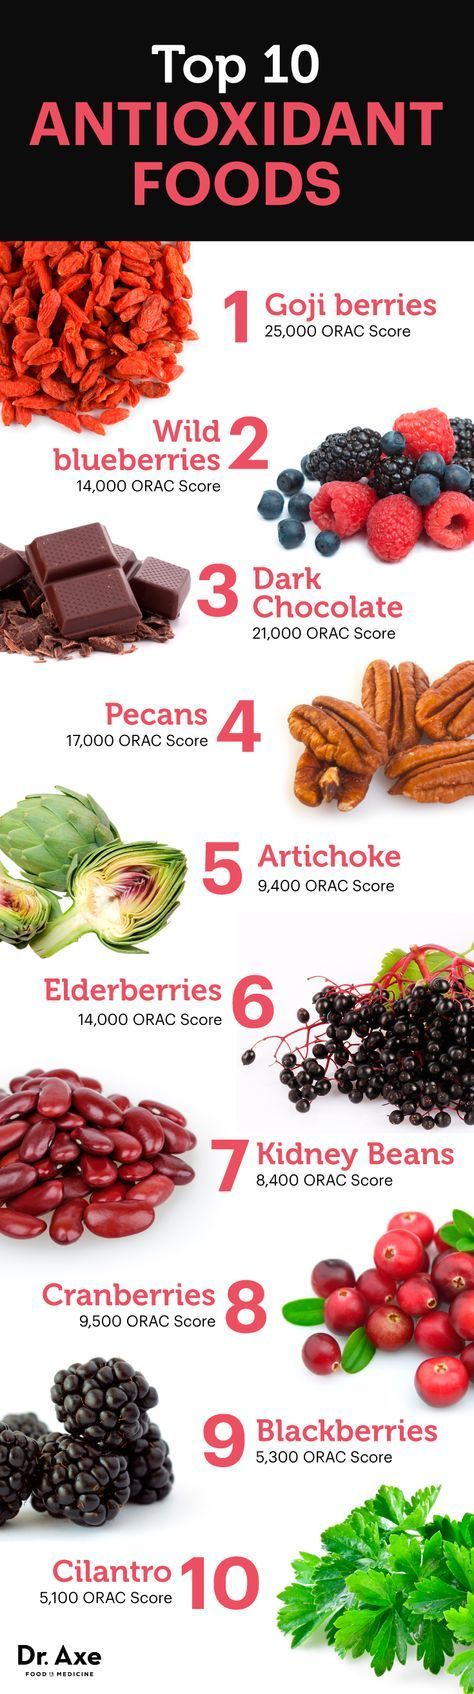 Top 10 High Antioxidant Foods - DrAxe.com